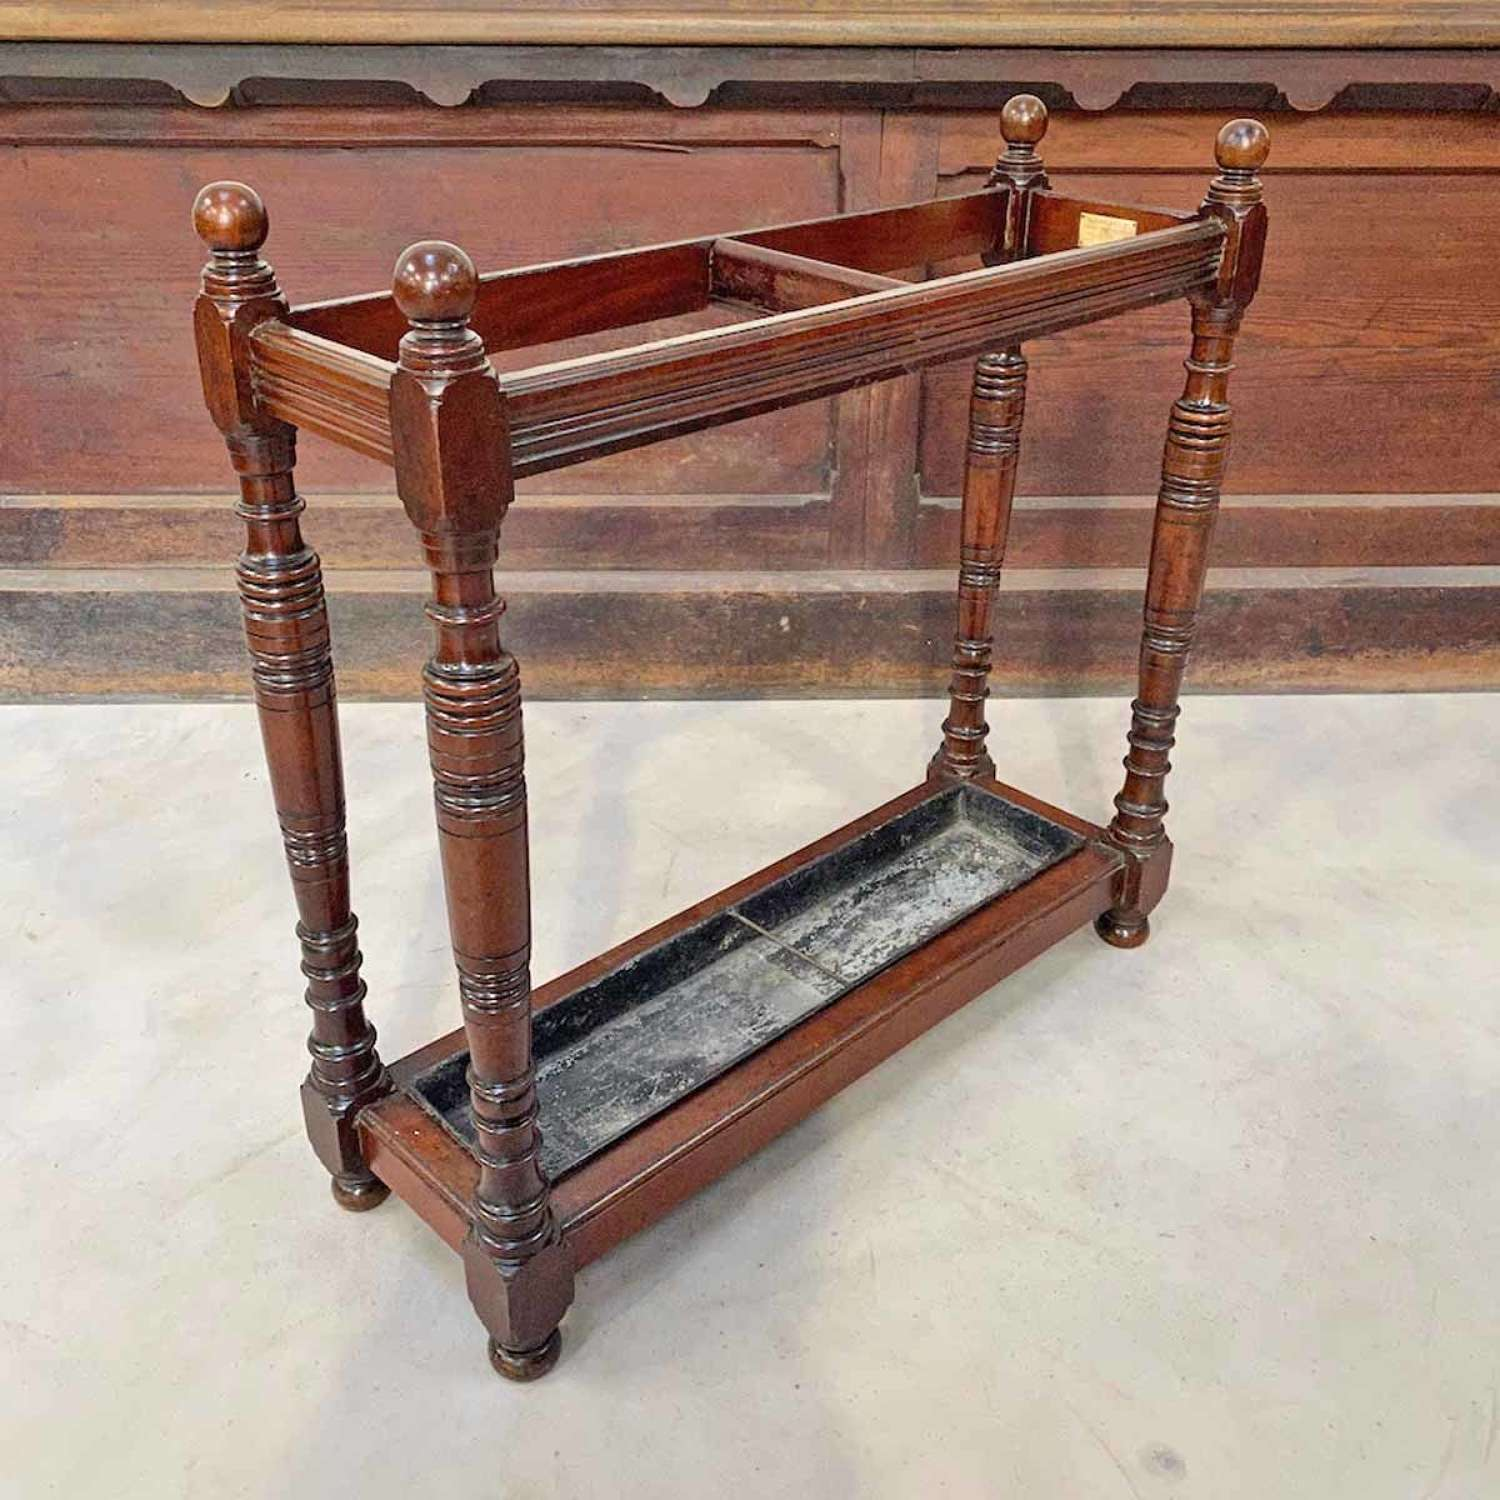 Walnut stick stand - by Goodall of Manchester